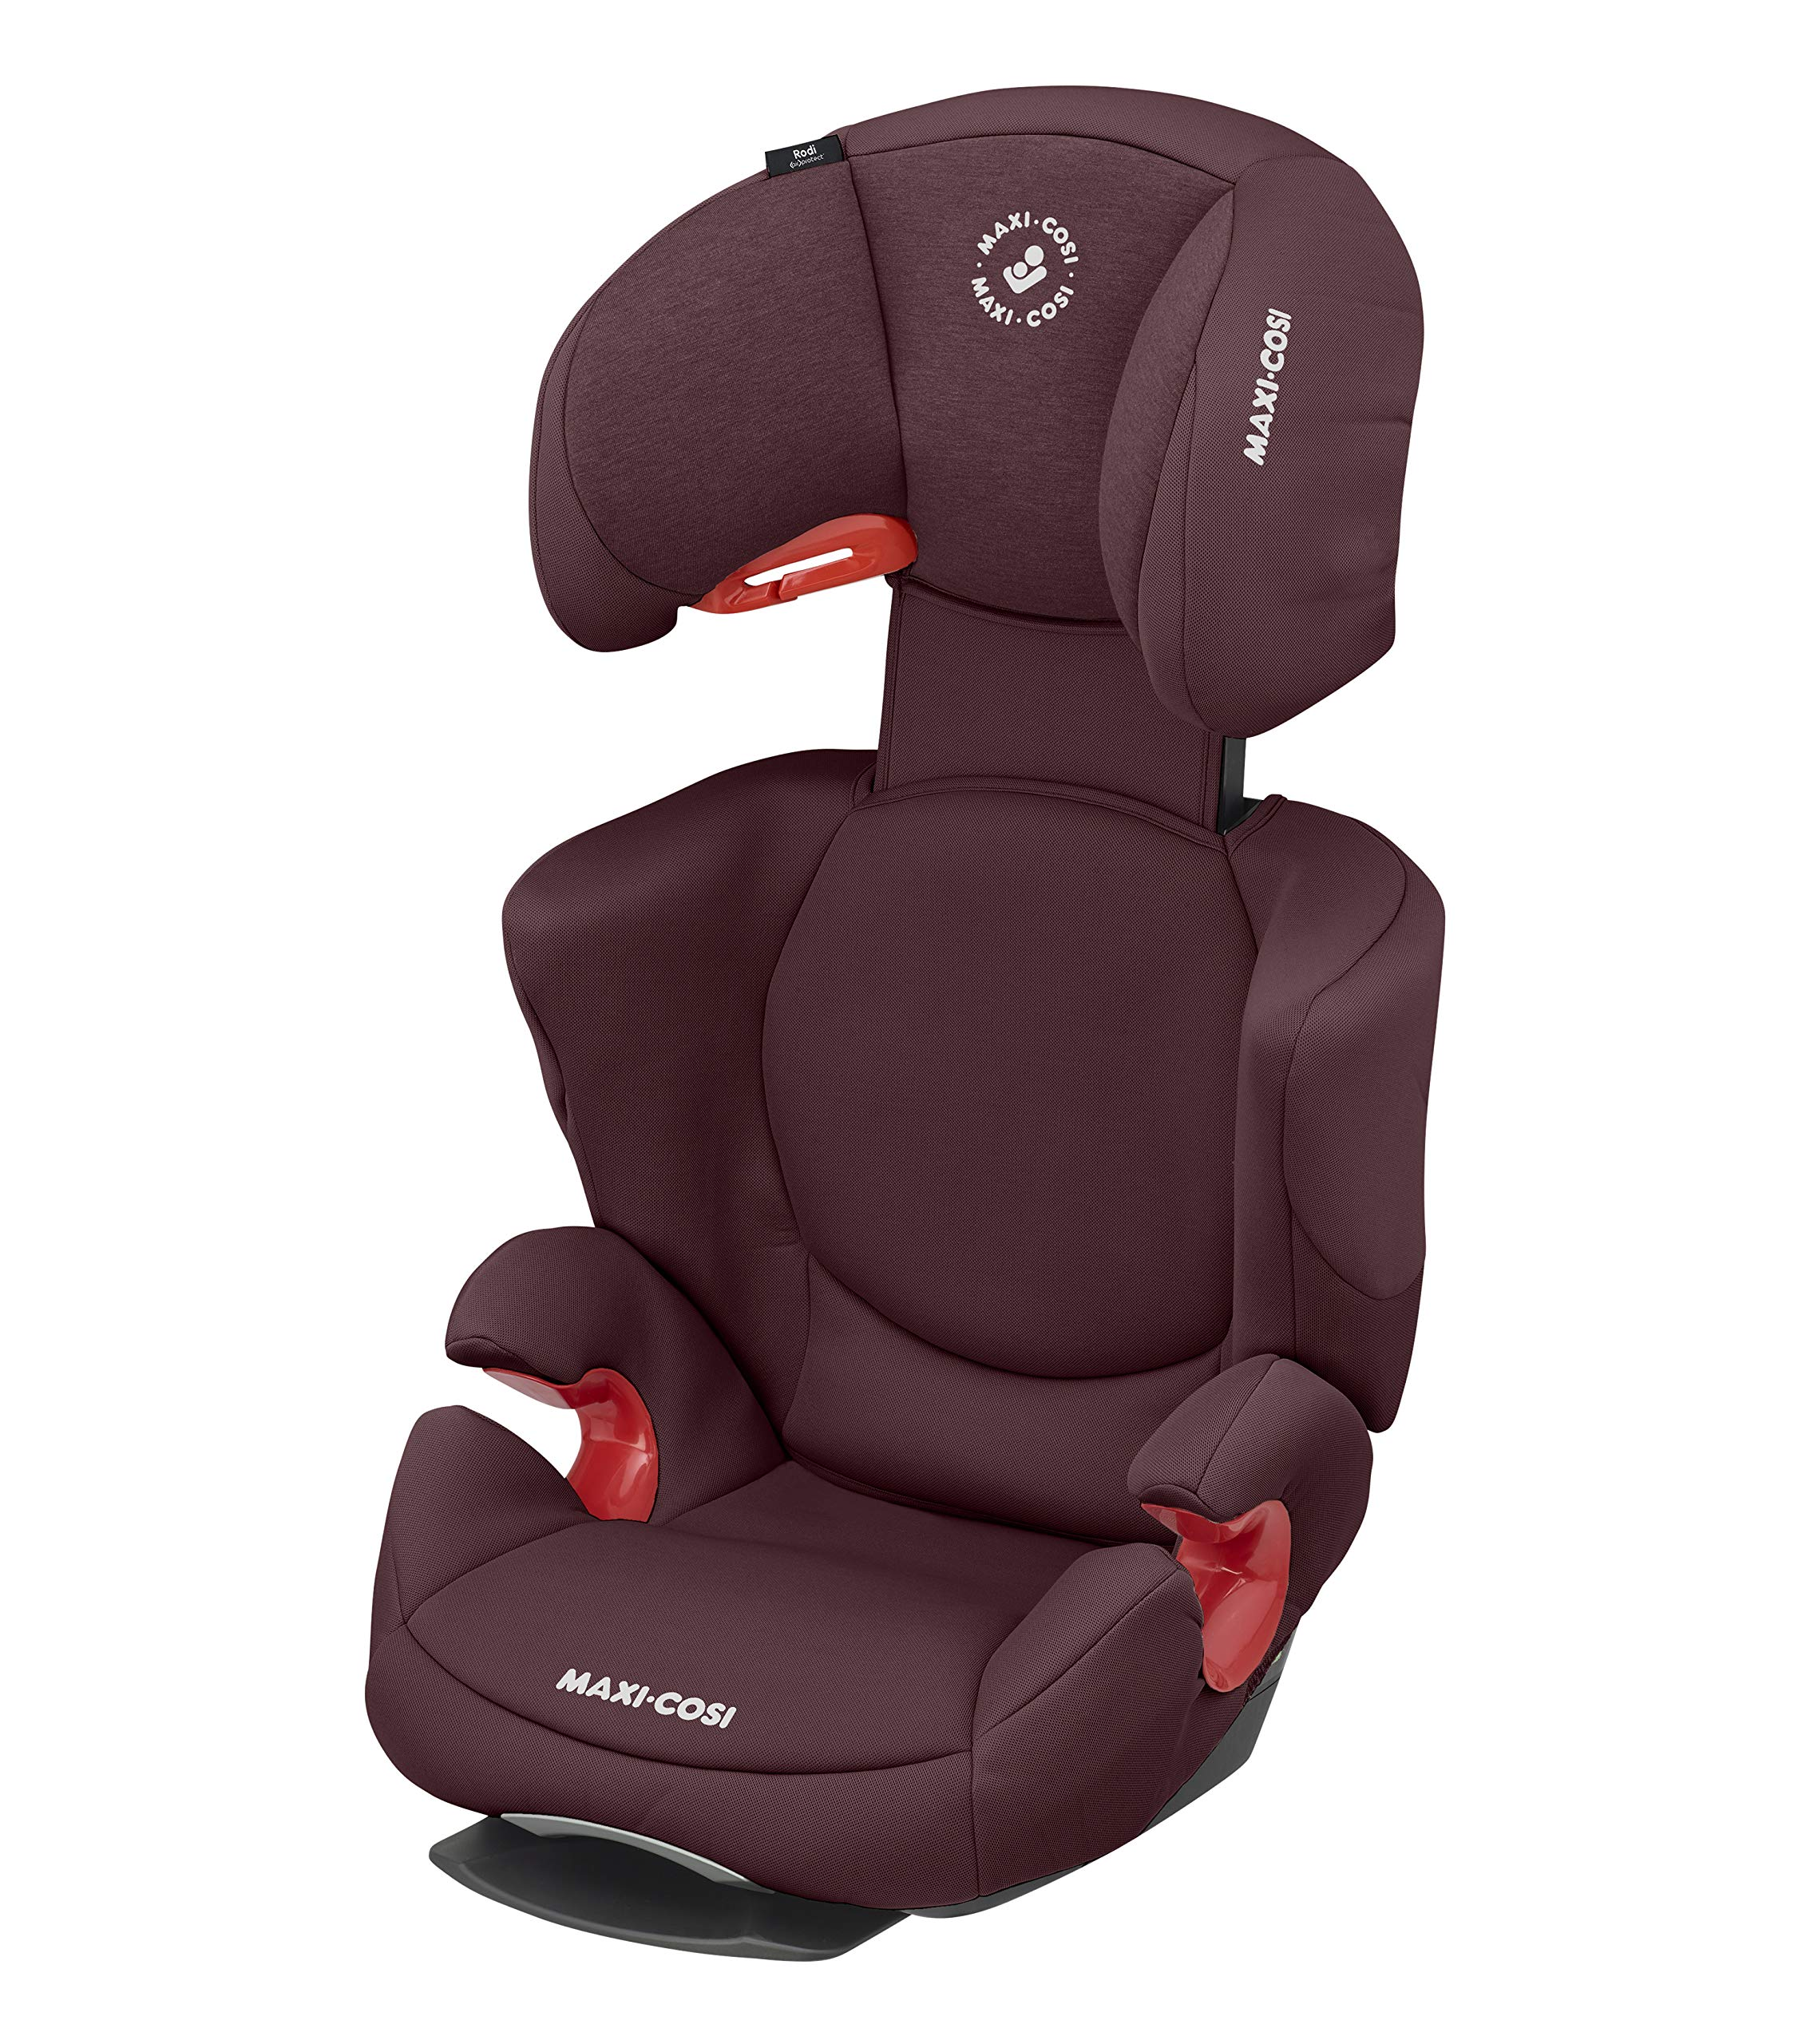 Maxi-Cosi Rodi Air Protect Child Car Seat, Highback Booster, Authentic Red, 4.913 kg Maxi-Cosi Child car seat, suitable from 3.5 to 12 years (15 - 36 kg) Easily install this safe car seat with a 3-point seat belt and attach the anchorage point in the head rest through your cars head rest Patented air protect technology in headrest reduces the risk of head and neck injuries up to 20% 1